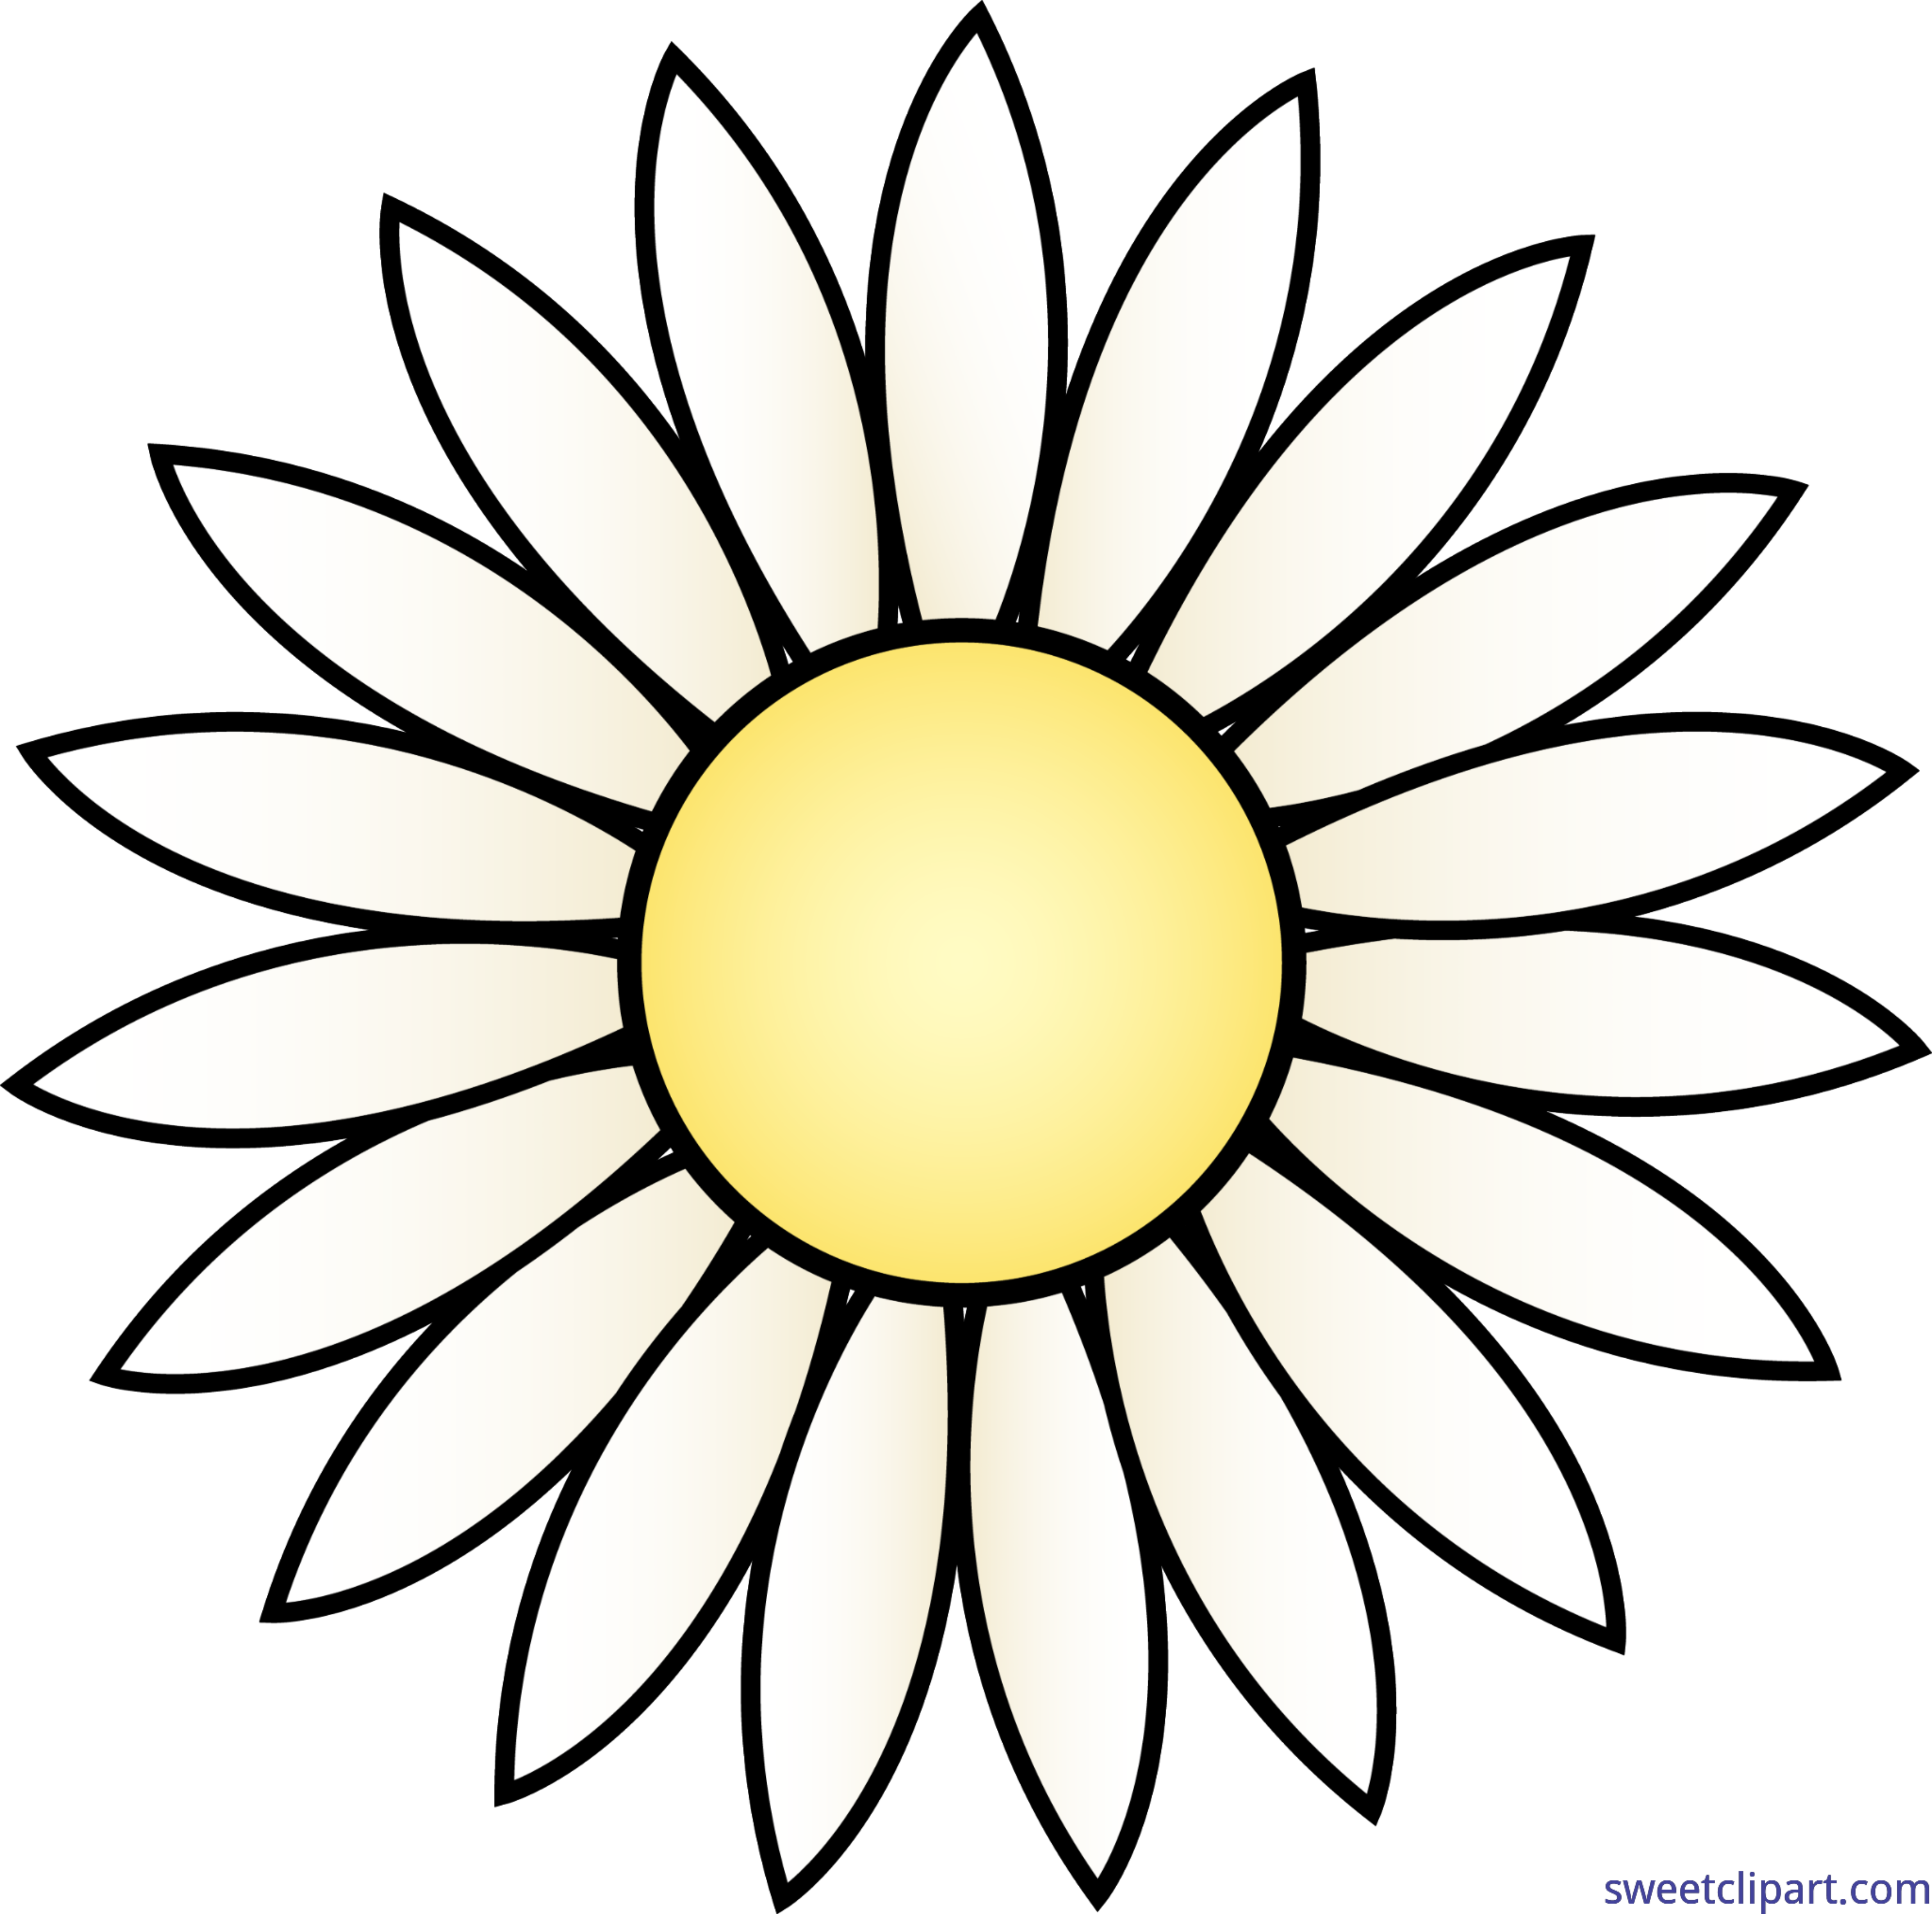 Nature flowers daisy clip. Daisies clipart scene vector black and white download